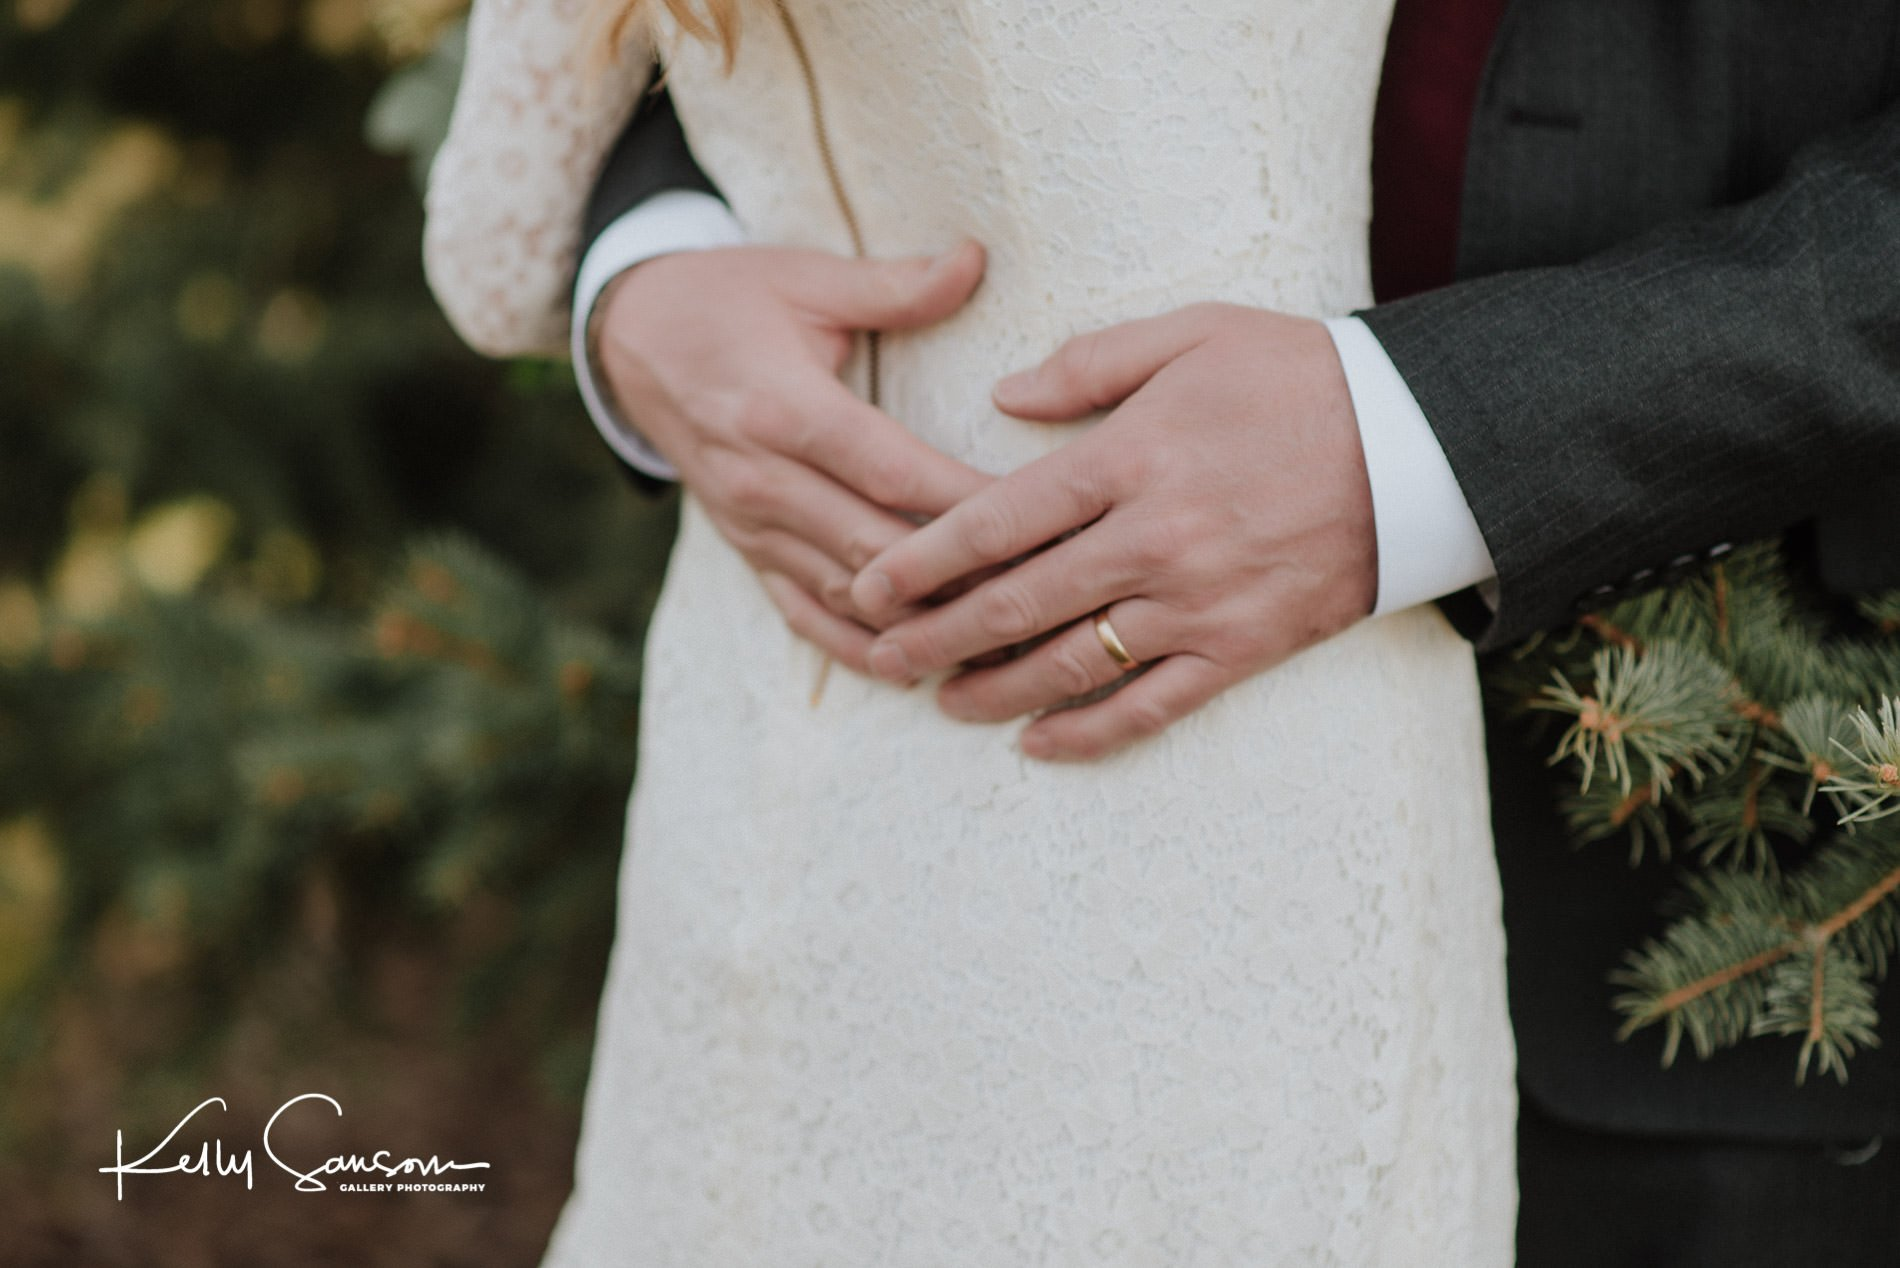 A grooms hands encircle his bride in front of a pine tree for wedding photography at the Bountiful LDS temple.